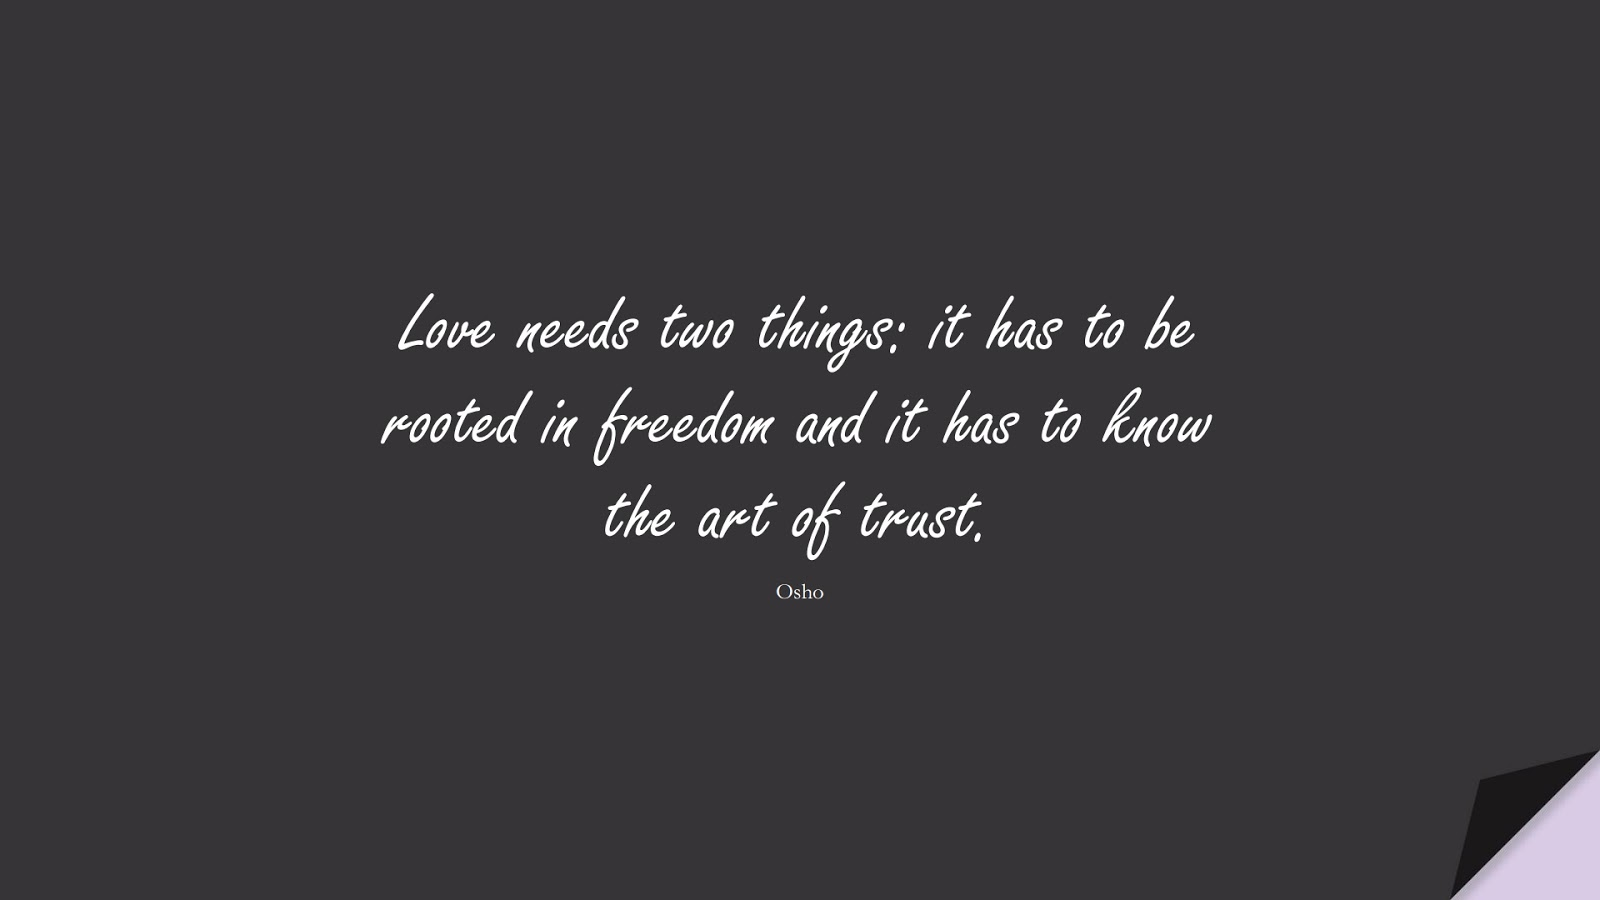 Love needs two things: it has to be rooted in freedom and it has to know the art of trust. (Osho);  #LoveQuotes